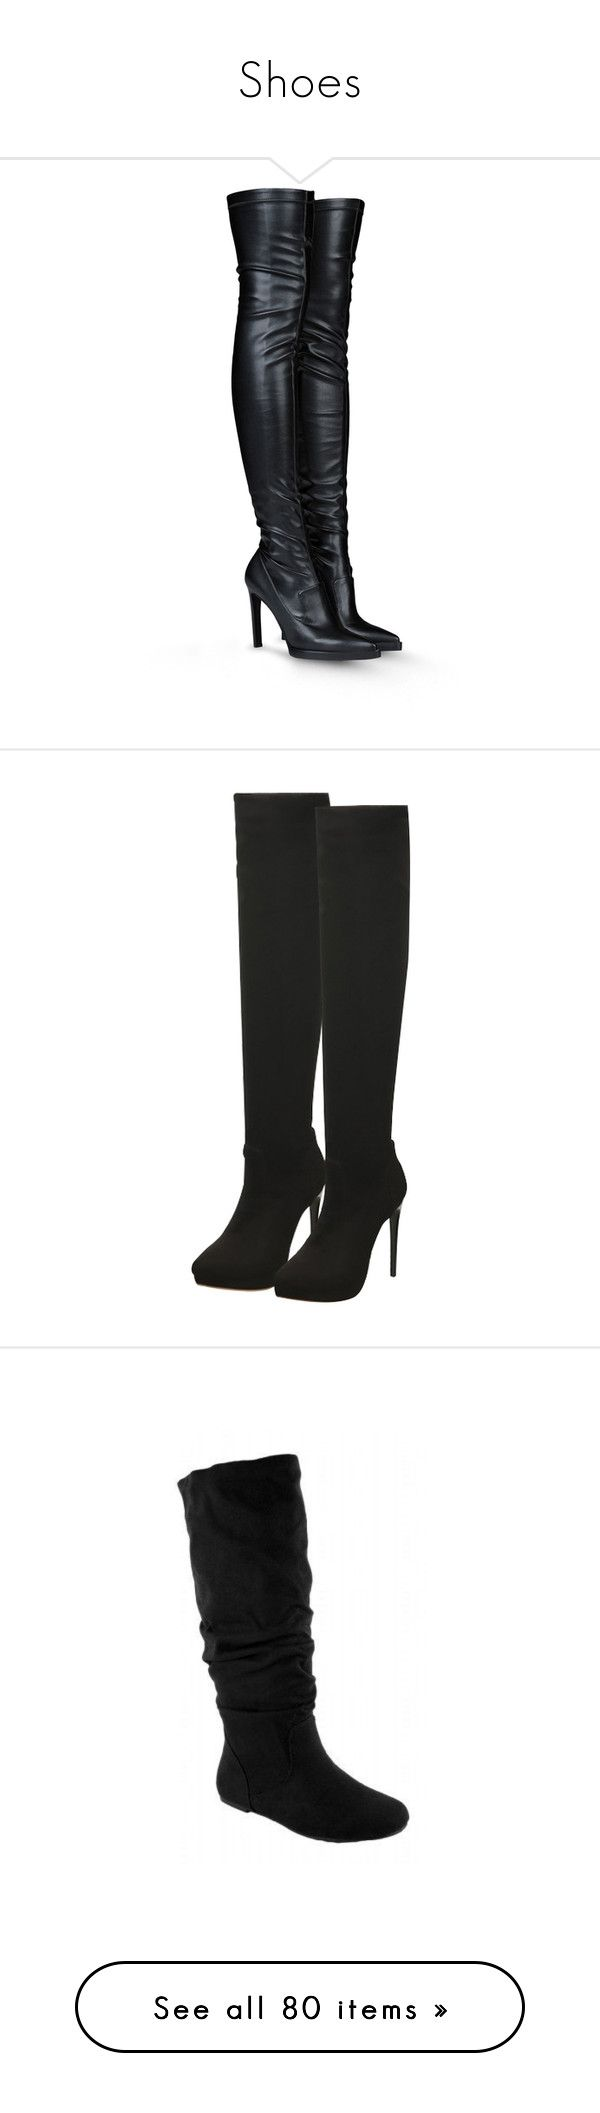 """Shoes"" by maryemmanuel on Polyvore featuring shoes, boots, heels, botas, stella mccartney, black, stretch over the knee boots, over-the-knee high-heel boots, black leather over the knee boots and over the knee high heel boots"